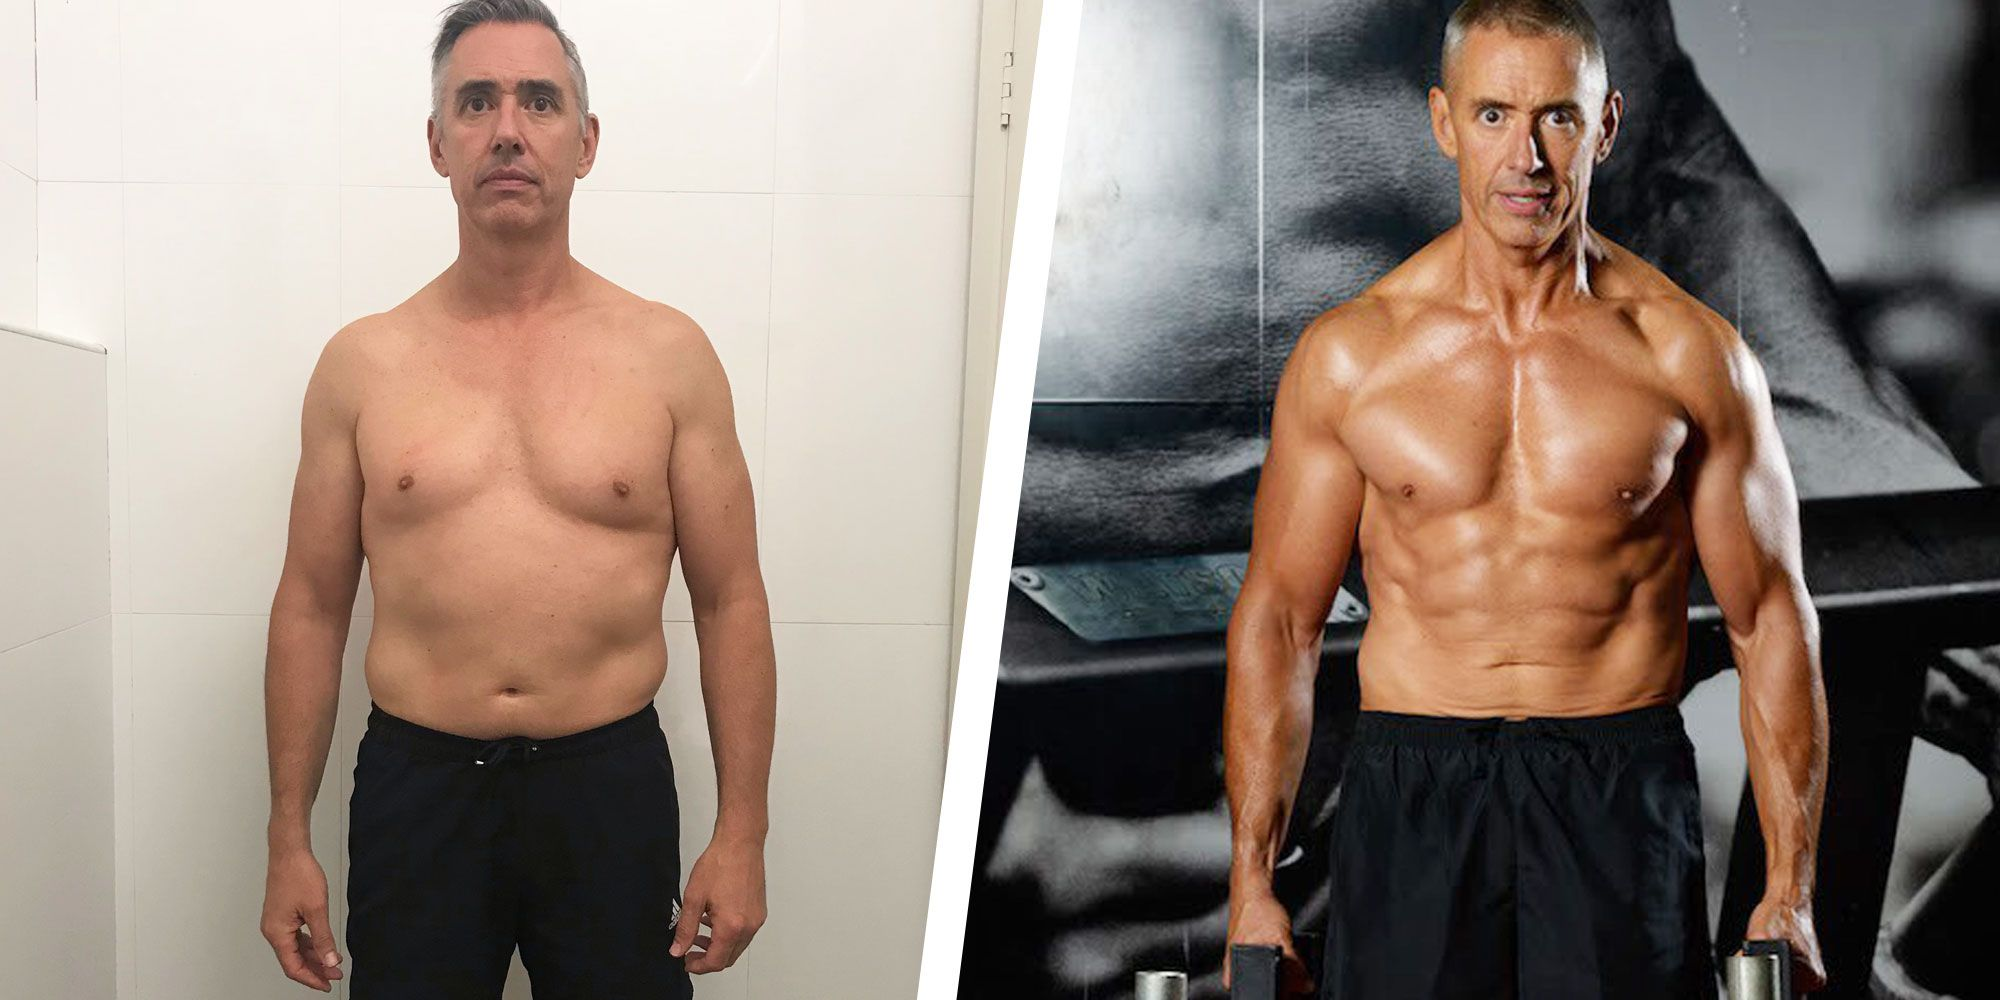 This Guy Reined in His Diet to Lose 30 Pounds and Get Shredded